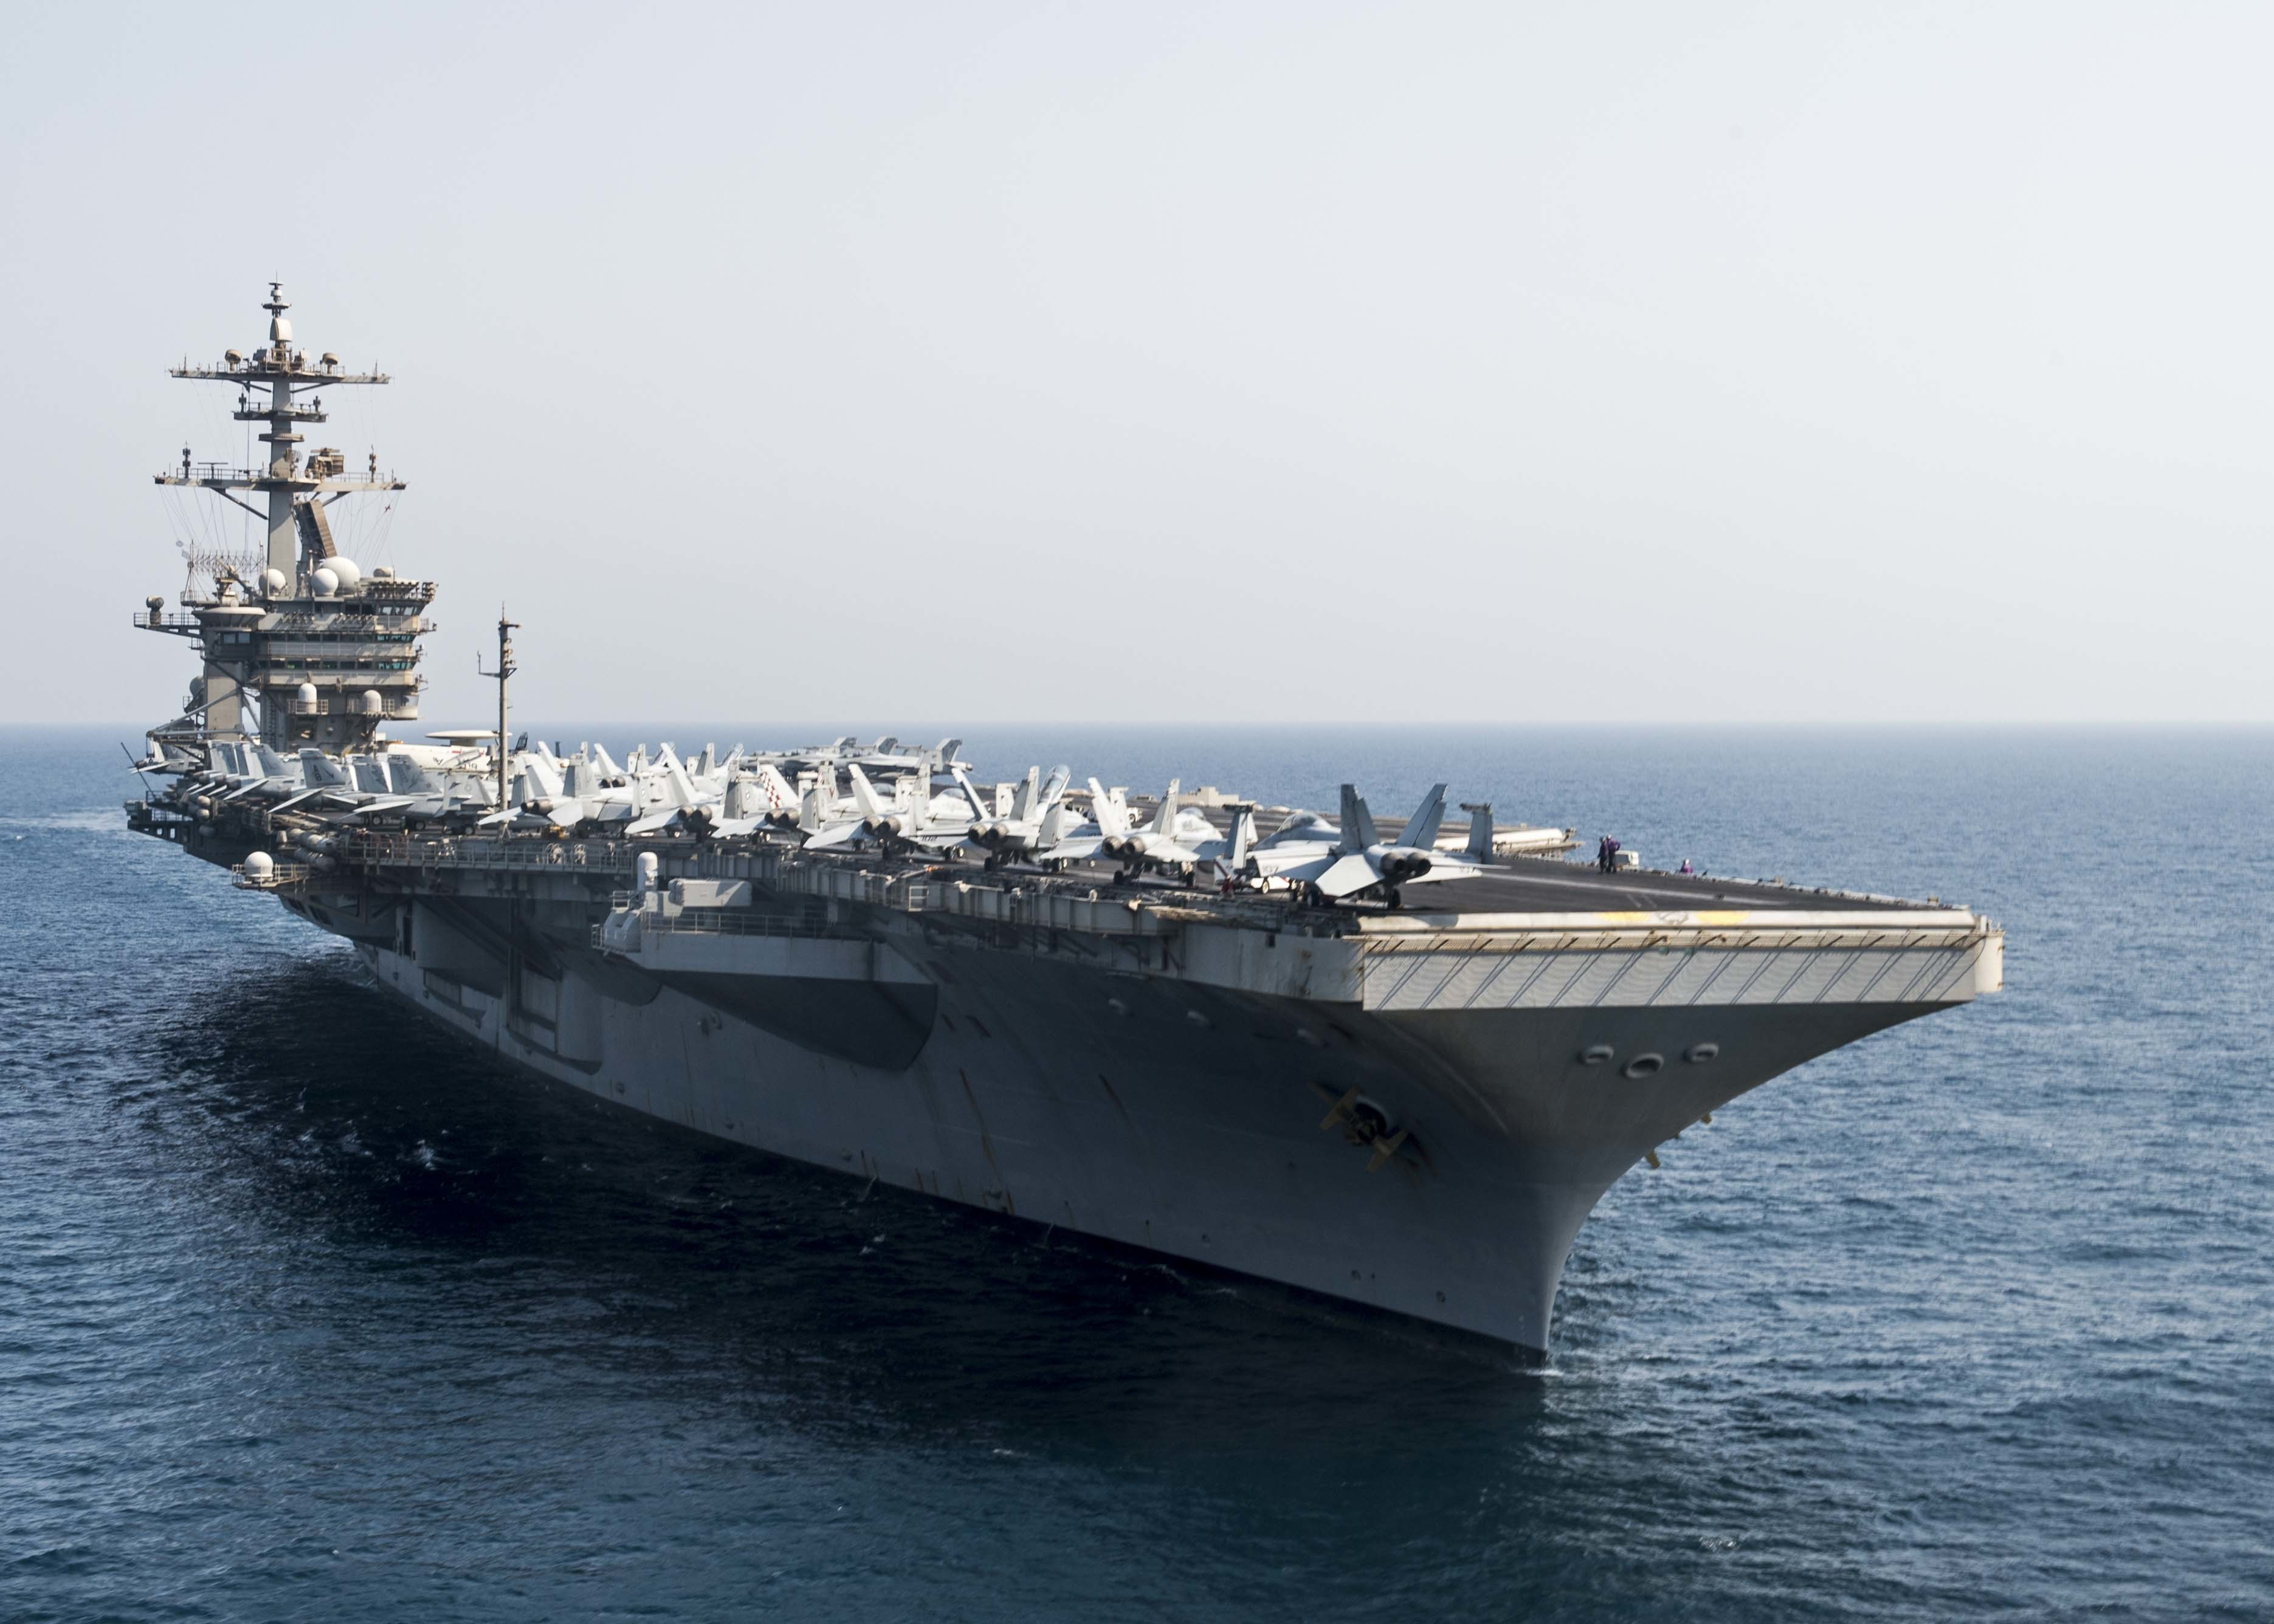 151002-N-SB299-367 ARABIAN GULF (Oct. 2, 2015) The aircraft carrier USS Theodore Roosevelt (CVN 71) transits the Arabian Gulf. Theodore Roosevelt is deployed in the U.S. 5th Fleet area of operations supporting Operation Inherent Resolve, strike operations in Iraq and Syria as directed, maritime security operations and theater security cooperation efforts in the region. (U.S. Navy photo by Mass Communication Specialist Seaman Alex Millar/Released)